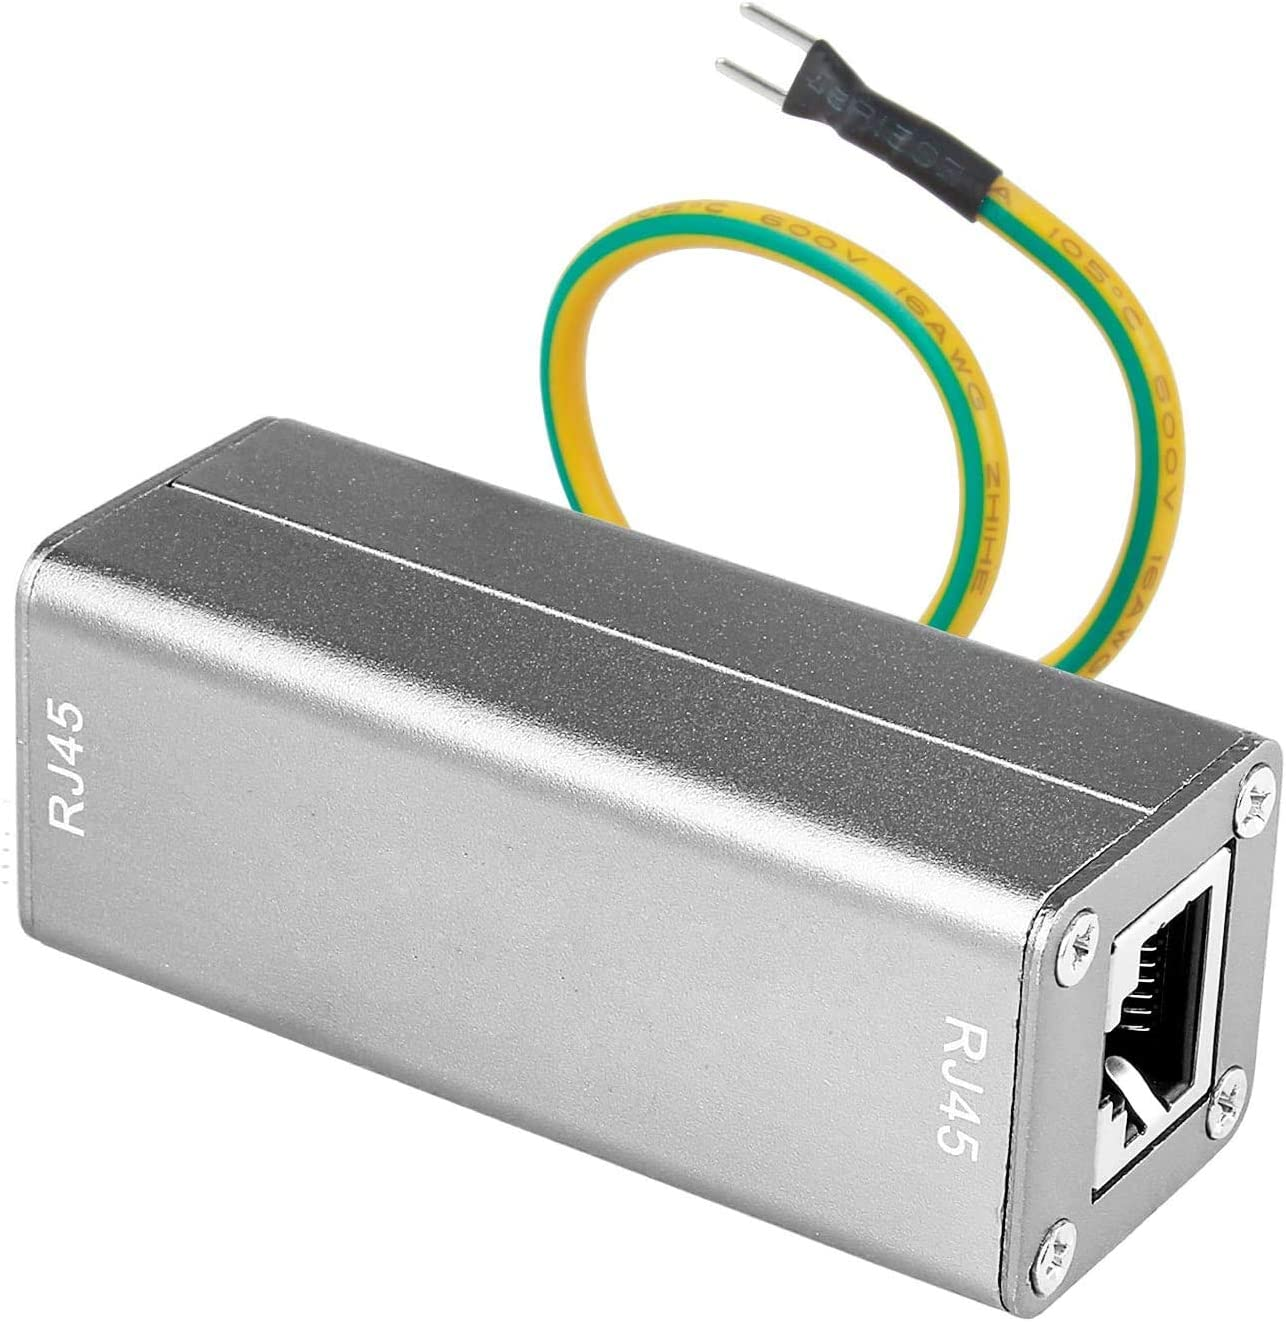 Sancable - RJ45 Max 59% OFF Ethernet Surge Gigabit P GbE Ranking TOP9 Protector